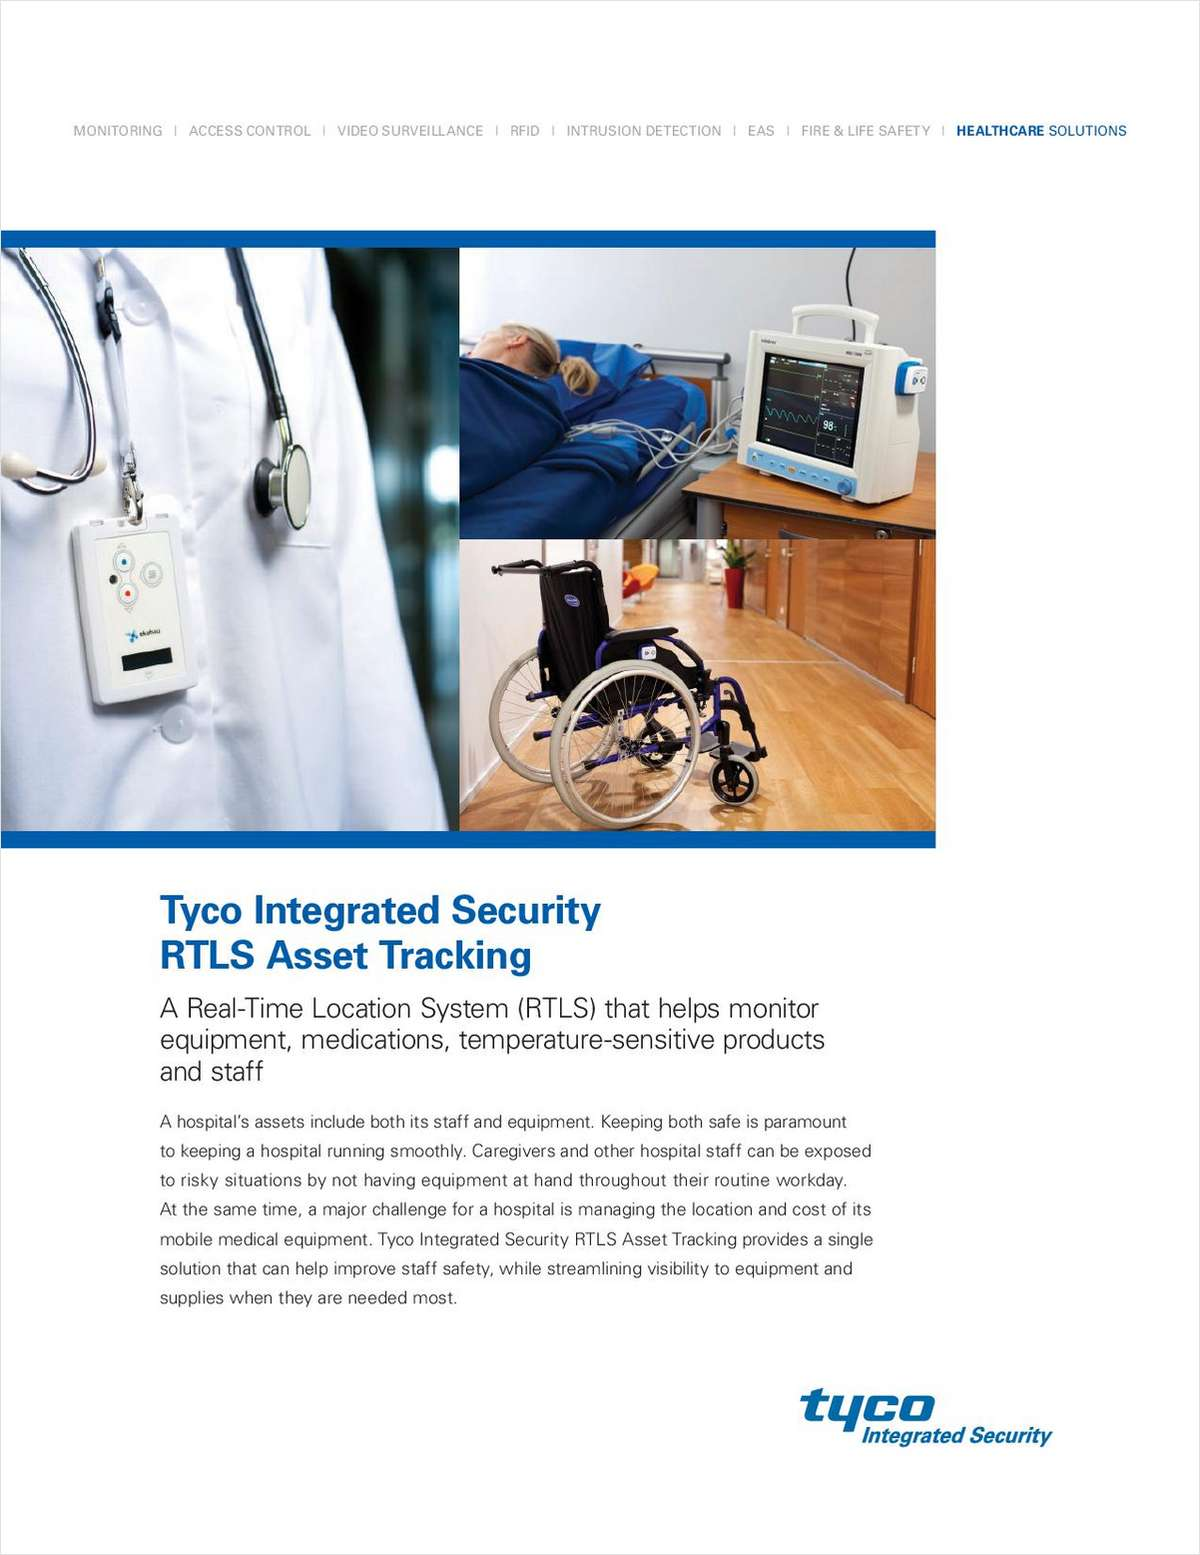 Tyco Integrated Security RTLS Asset Tracking